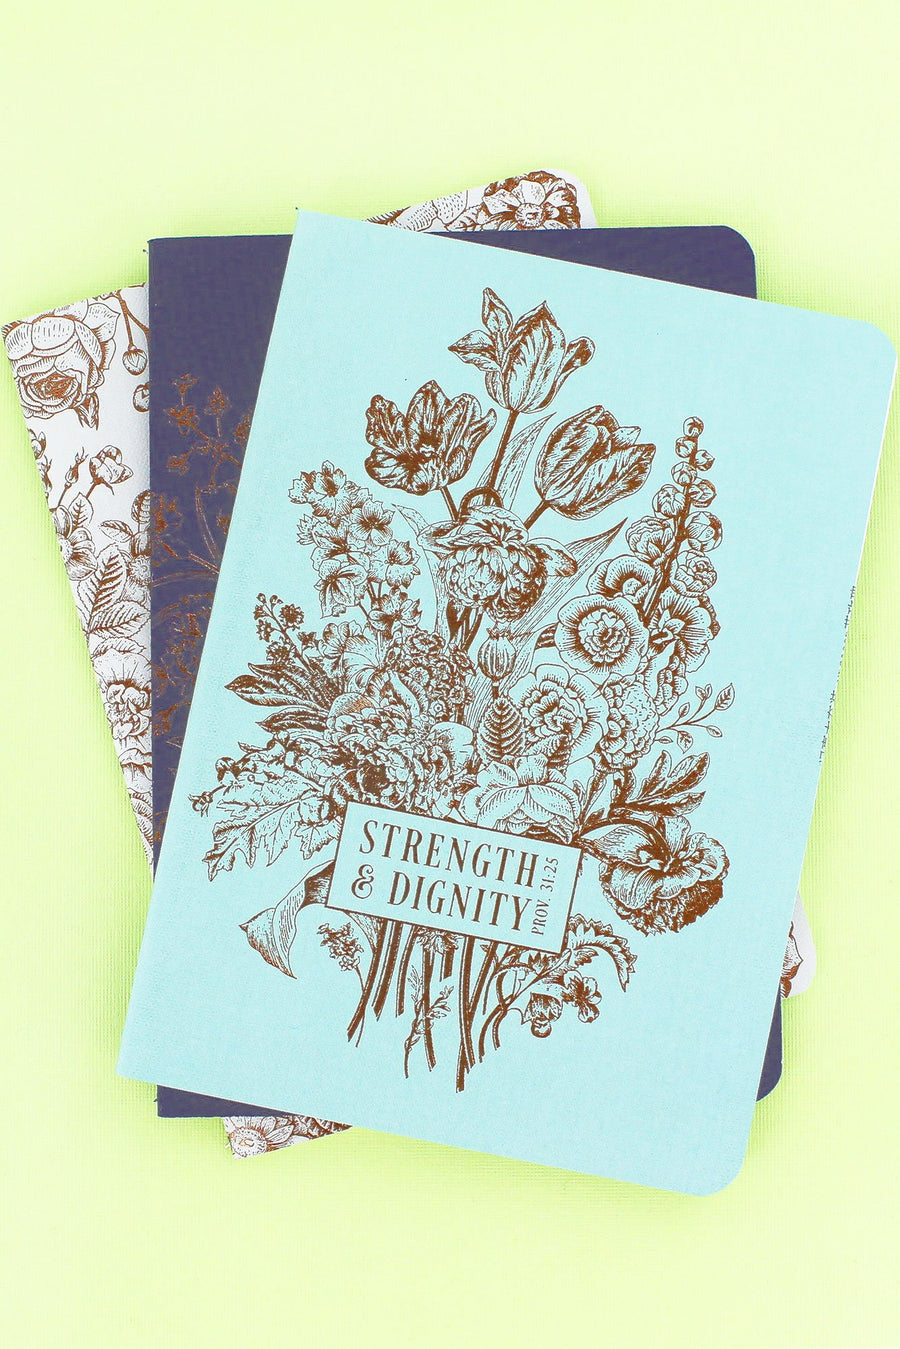 Set of 3 'Strength & Dignity' Notebooks